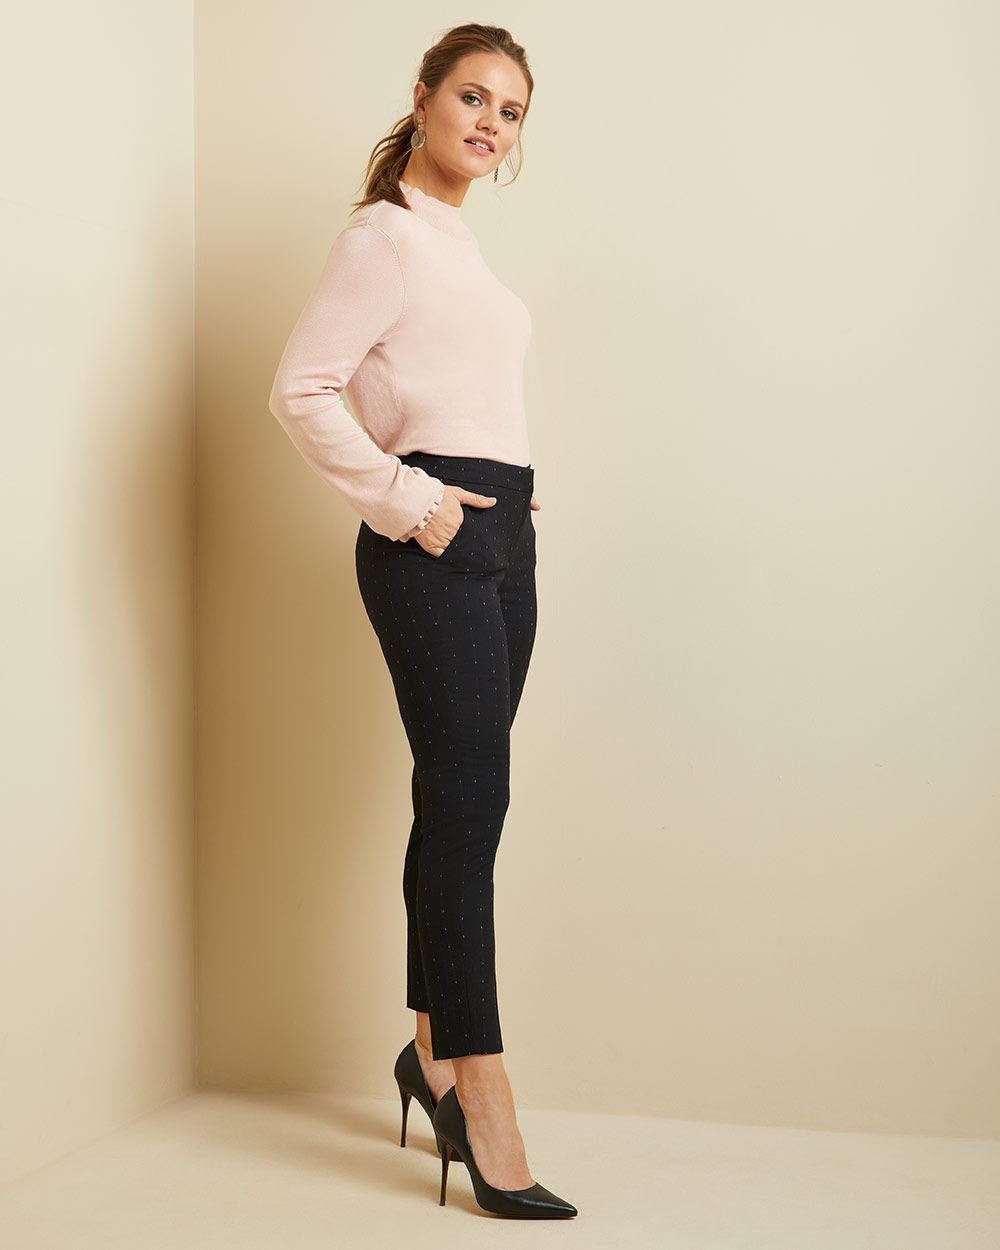 Dotted navy Curvy fit Slim Leg Ankle Pant